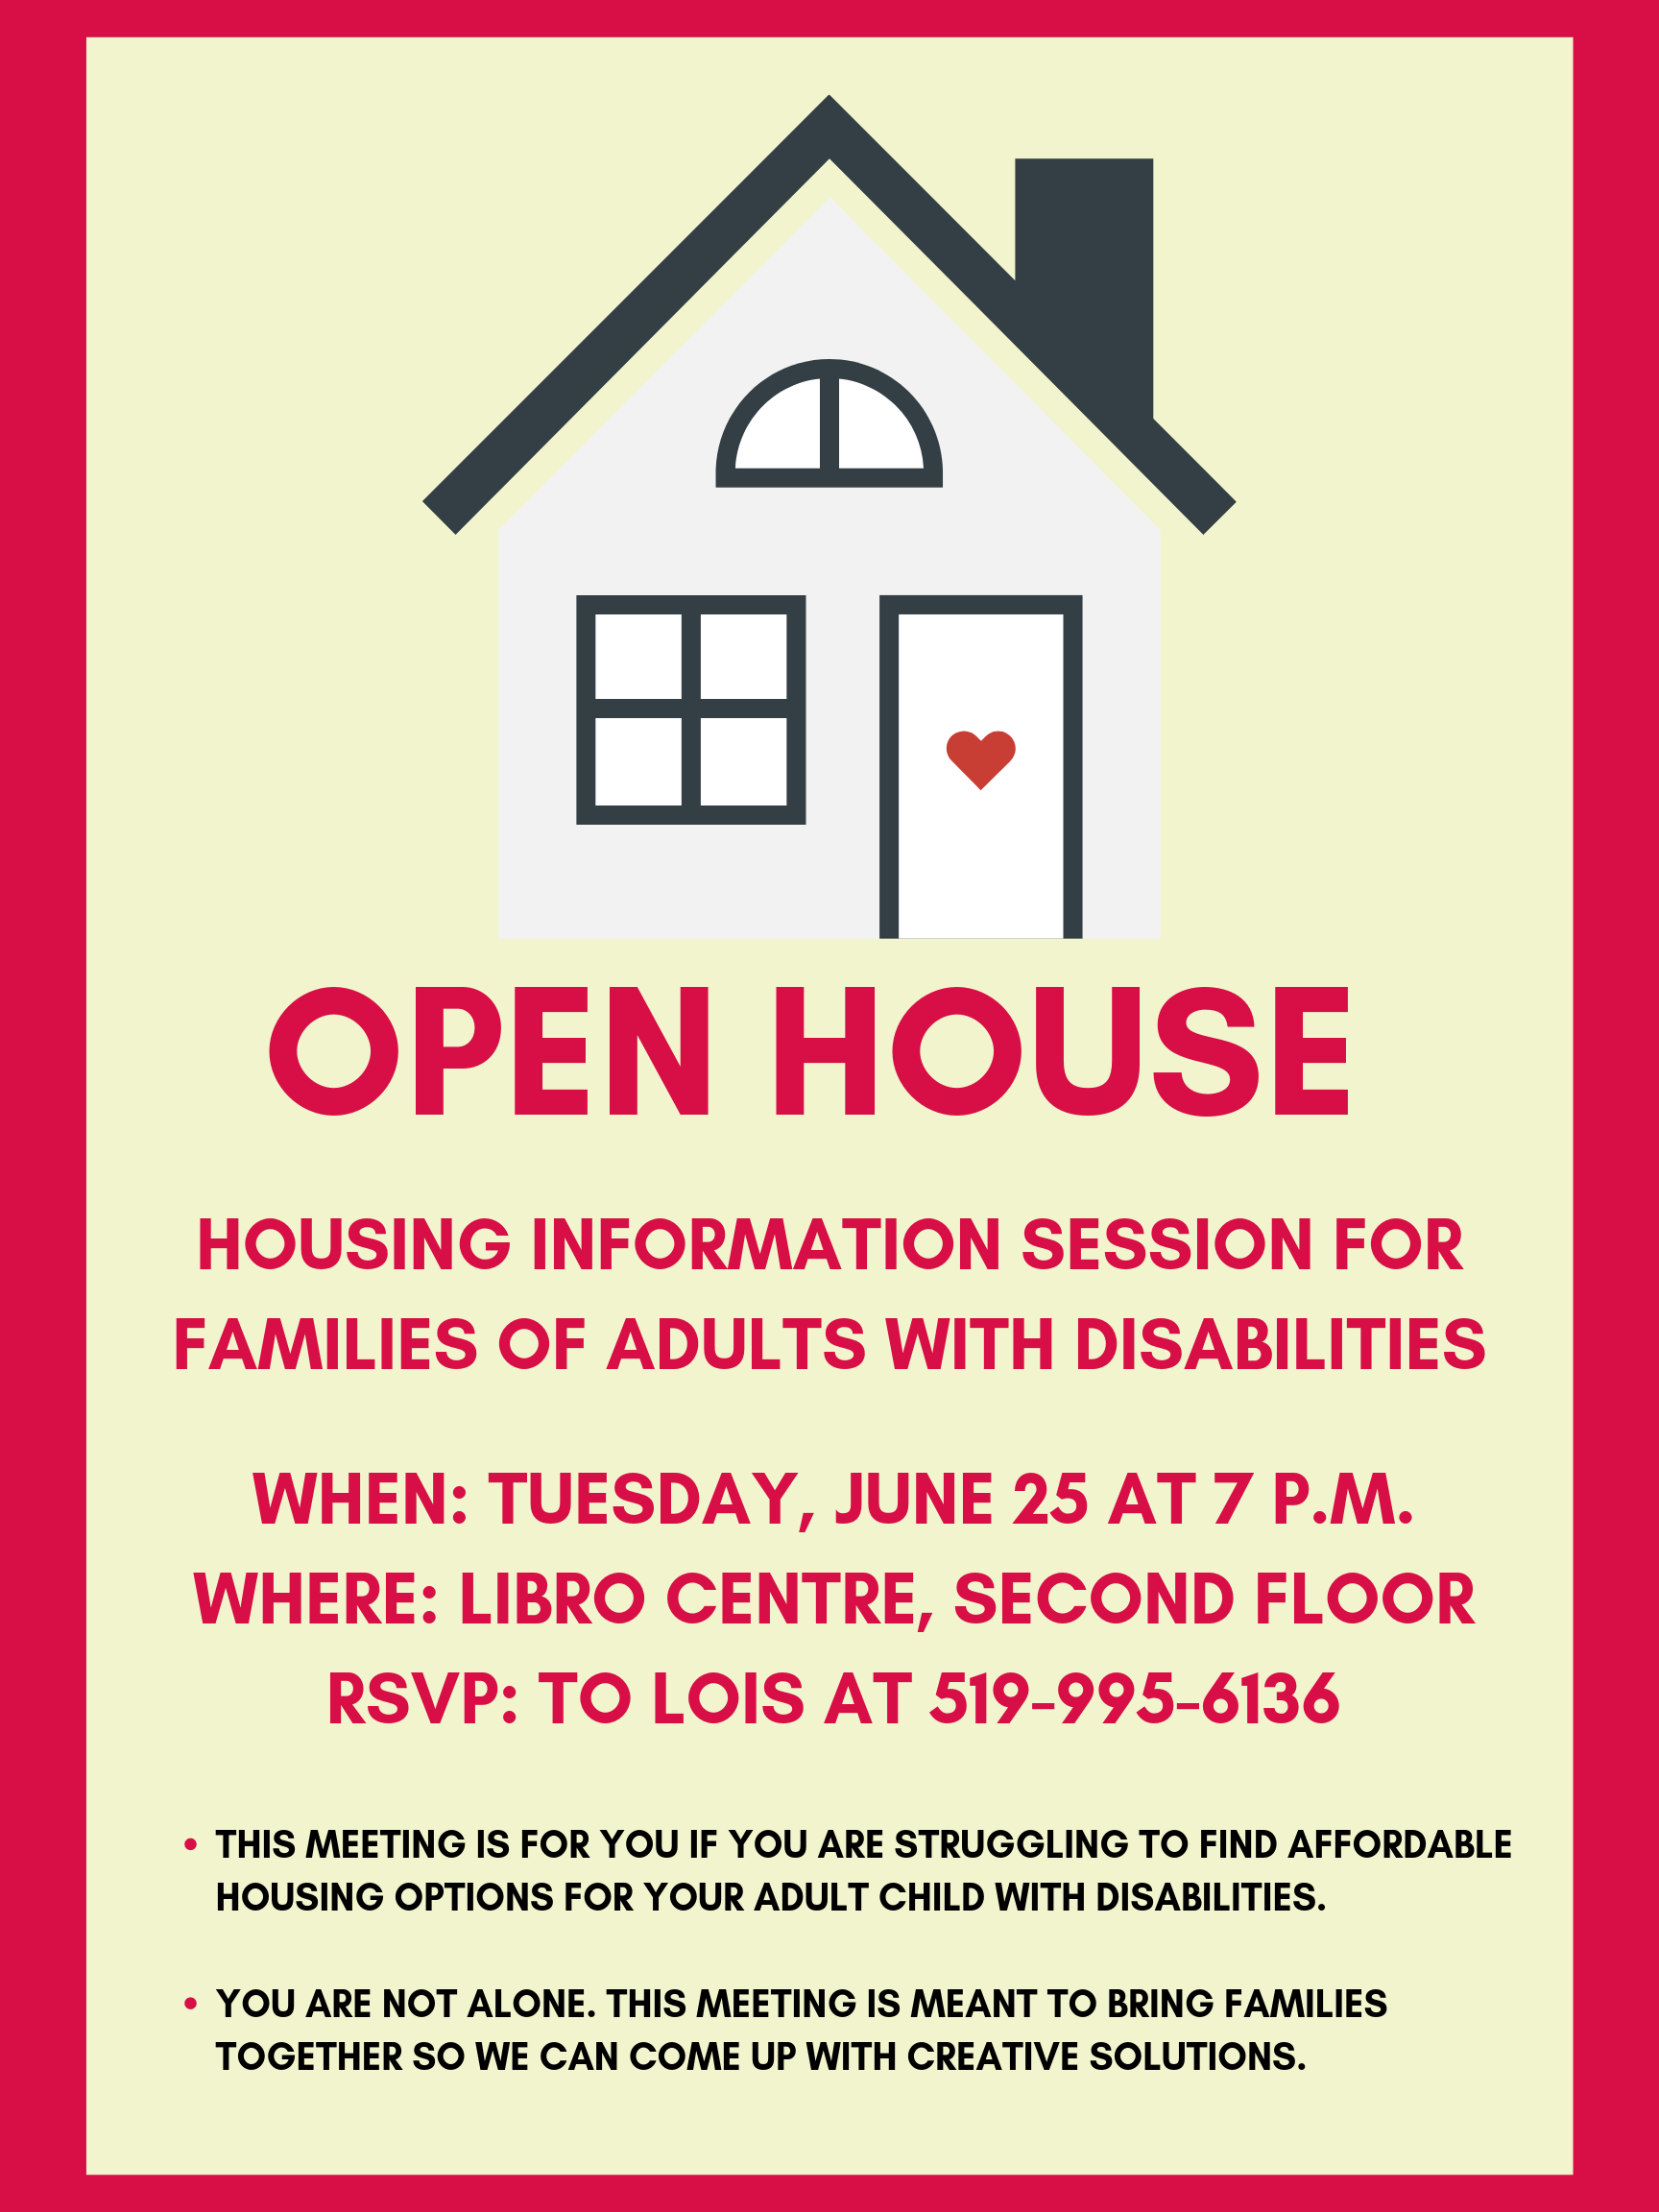 A poster with a picture of house advertising the event at the Libro Centre on July 25th at 7 p.m.